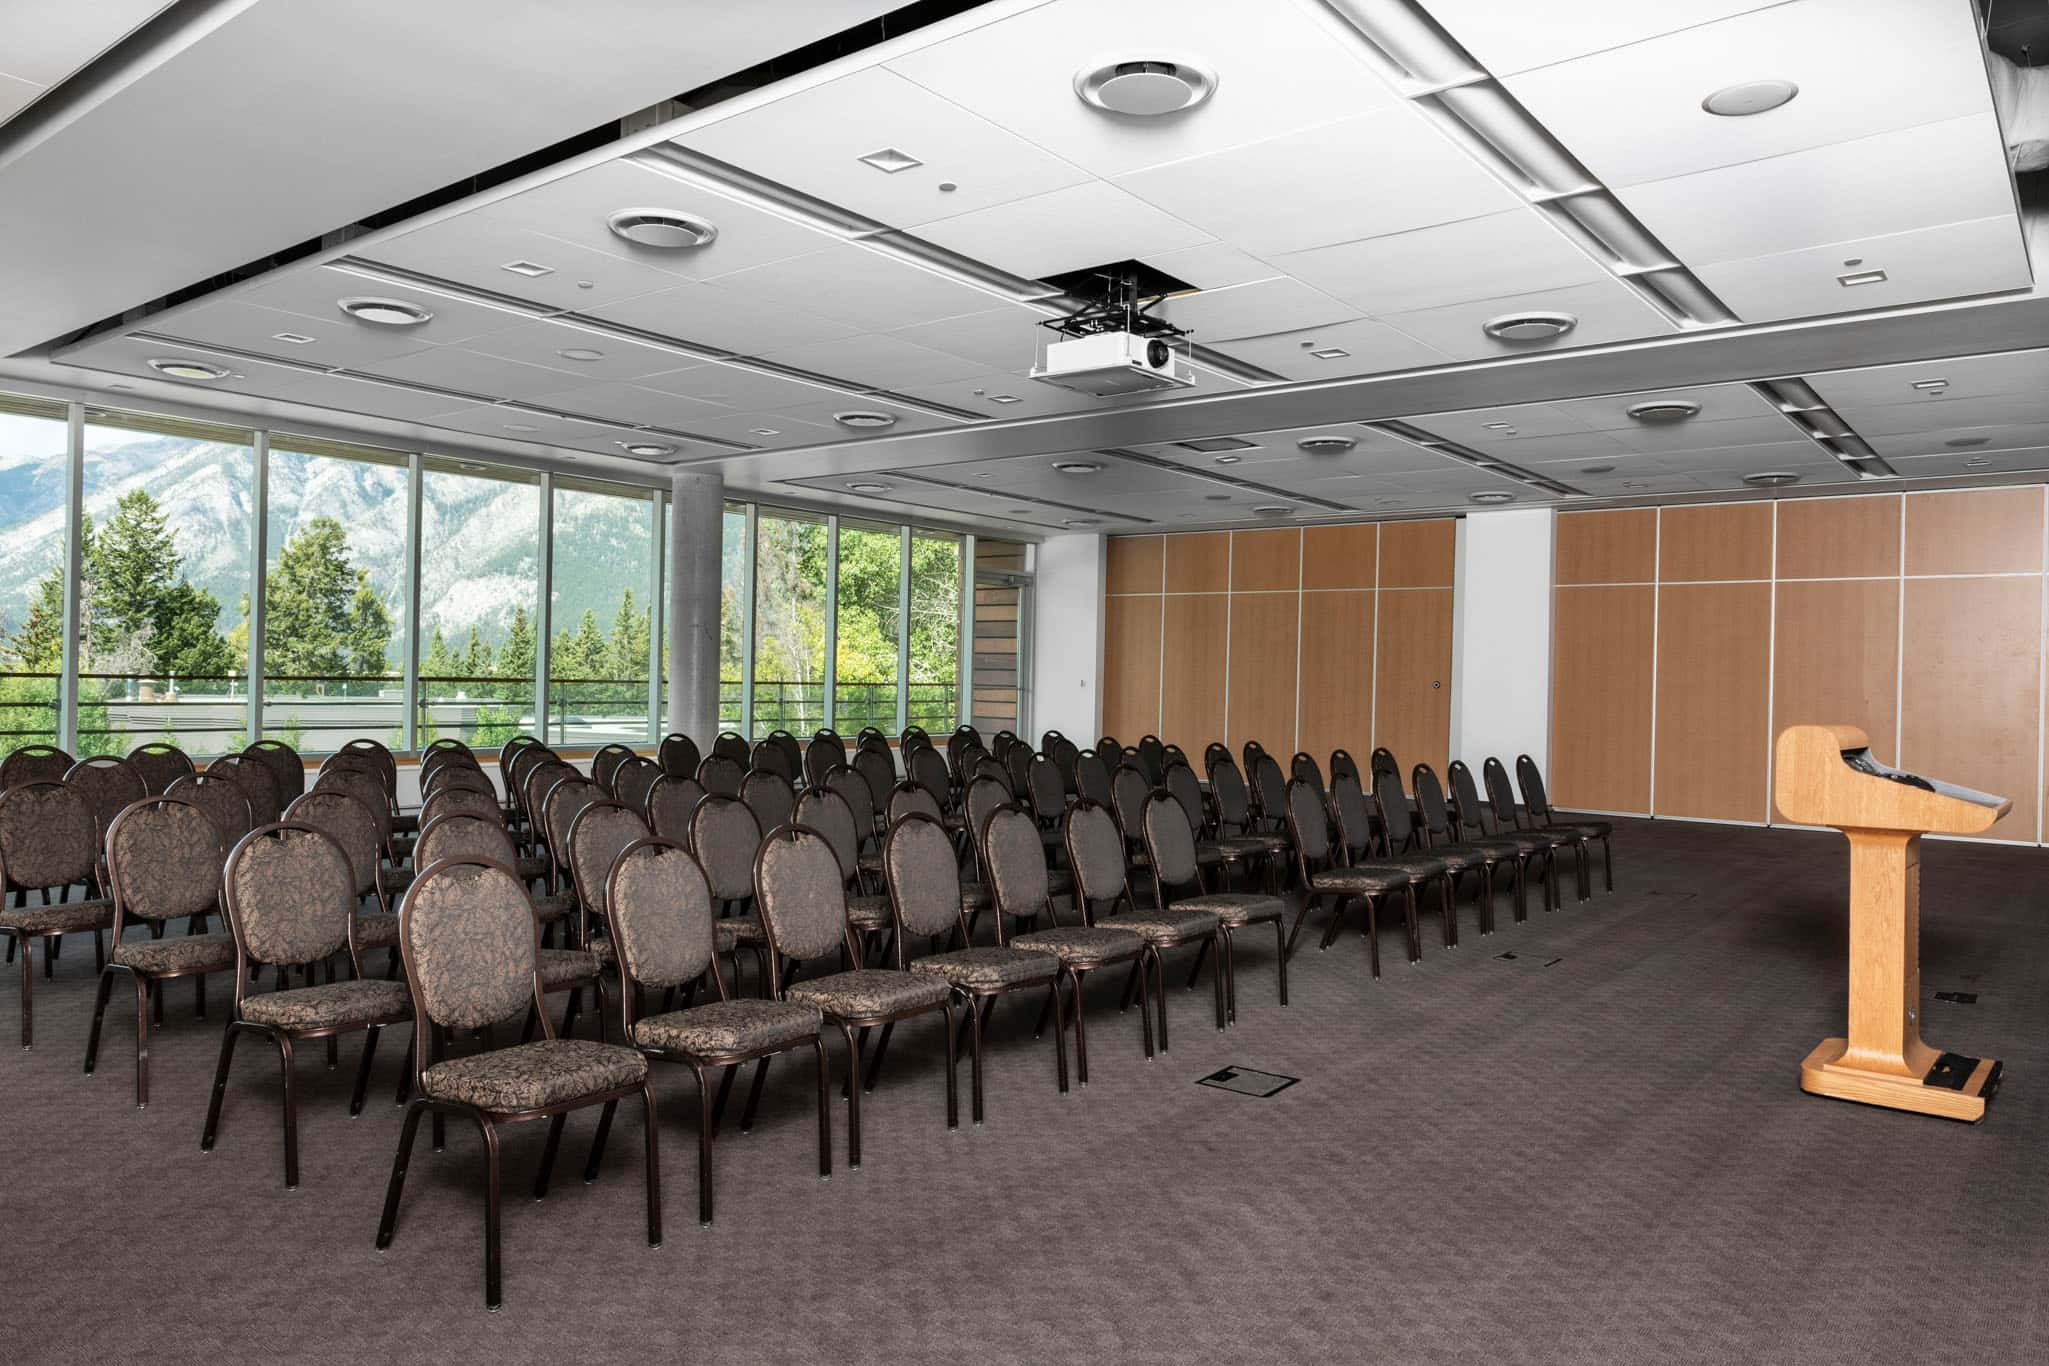 A meeting room set up for a presentation with a podium overlooking chairs.